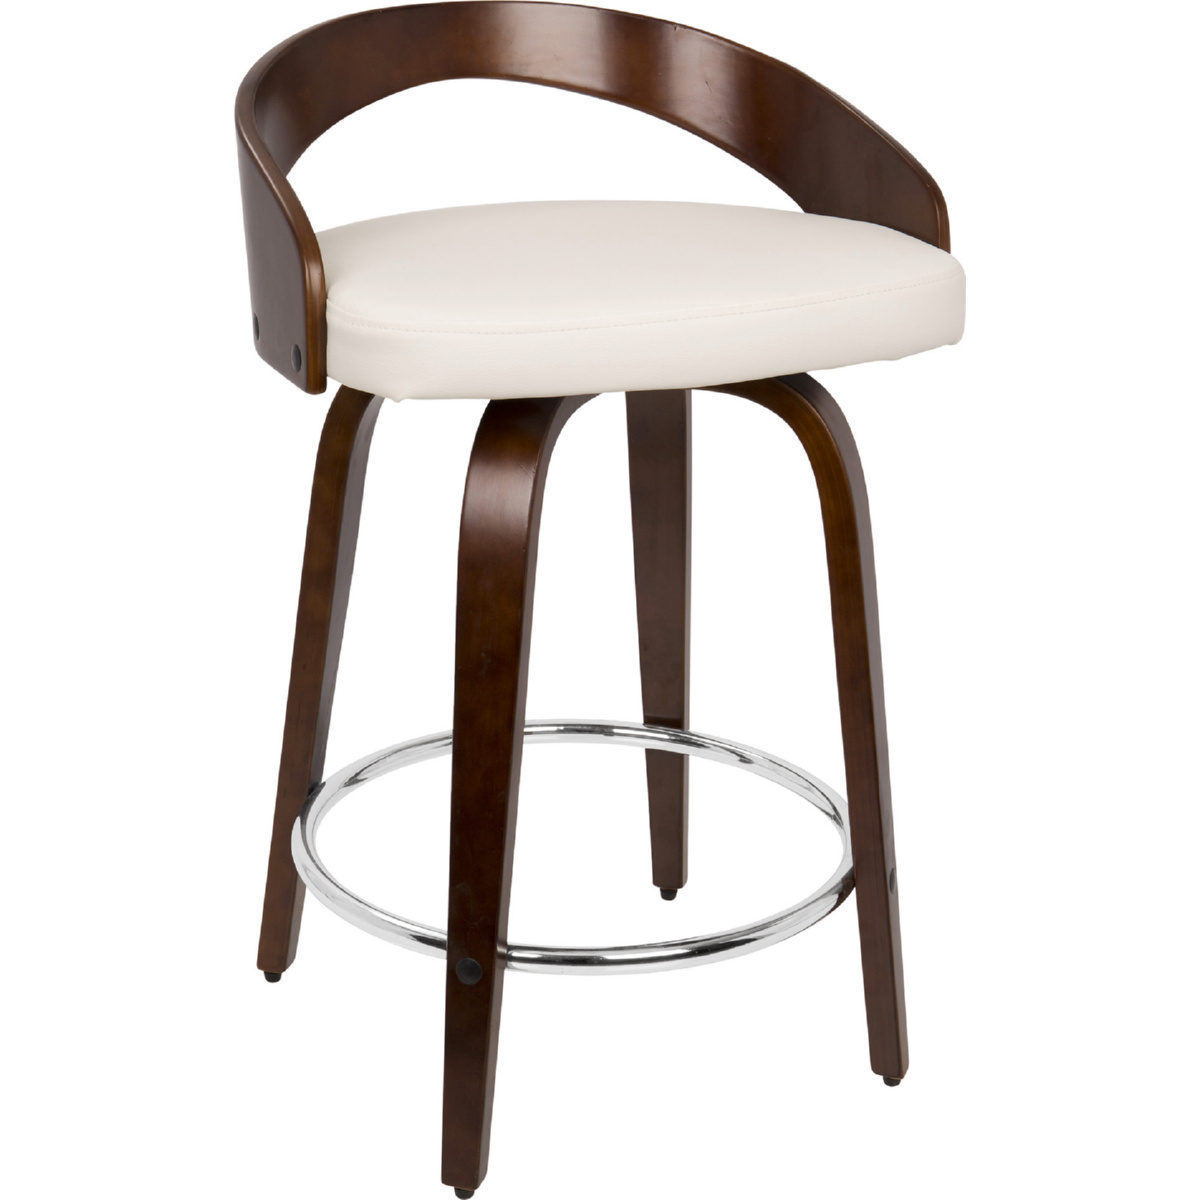 Lumisource Cs Jy Grt Ch W Grotto Swivel Counter Stool In